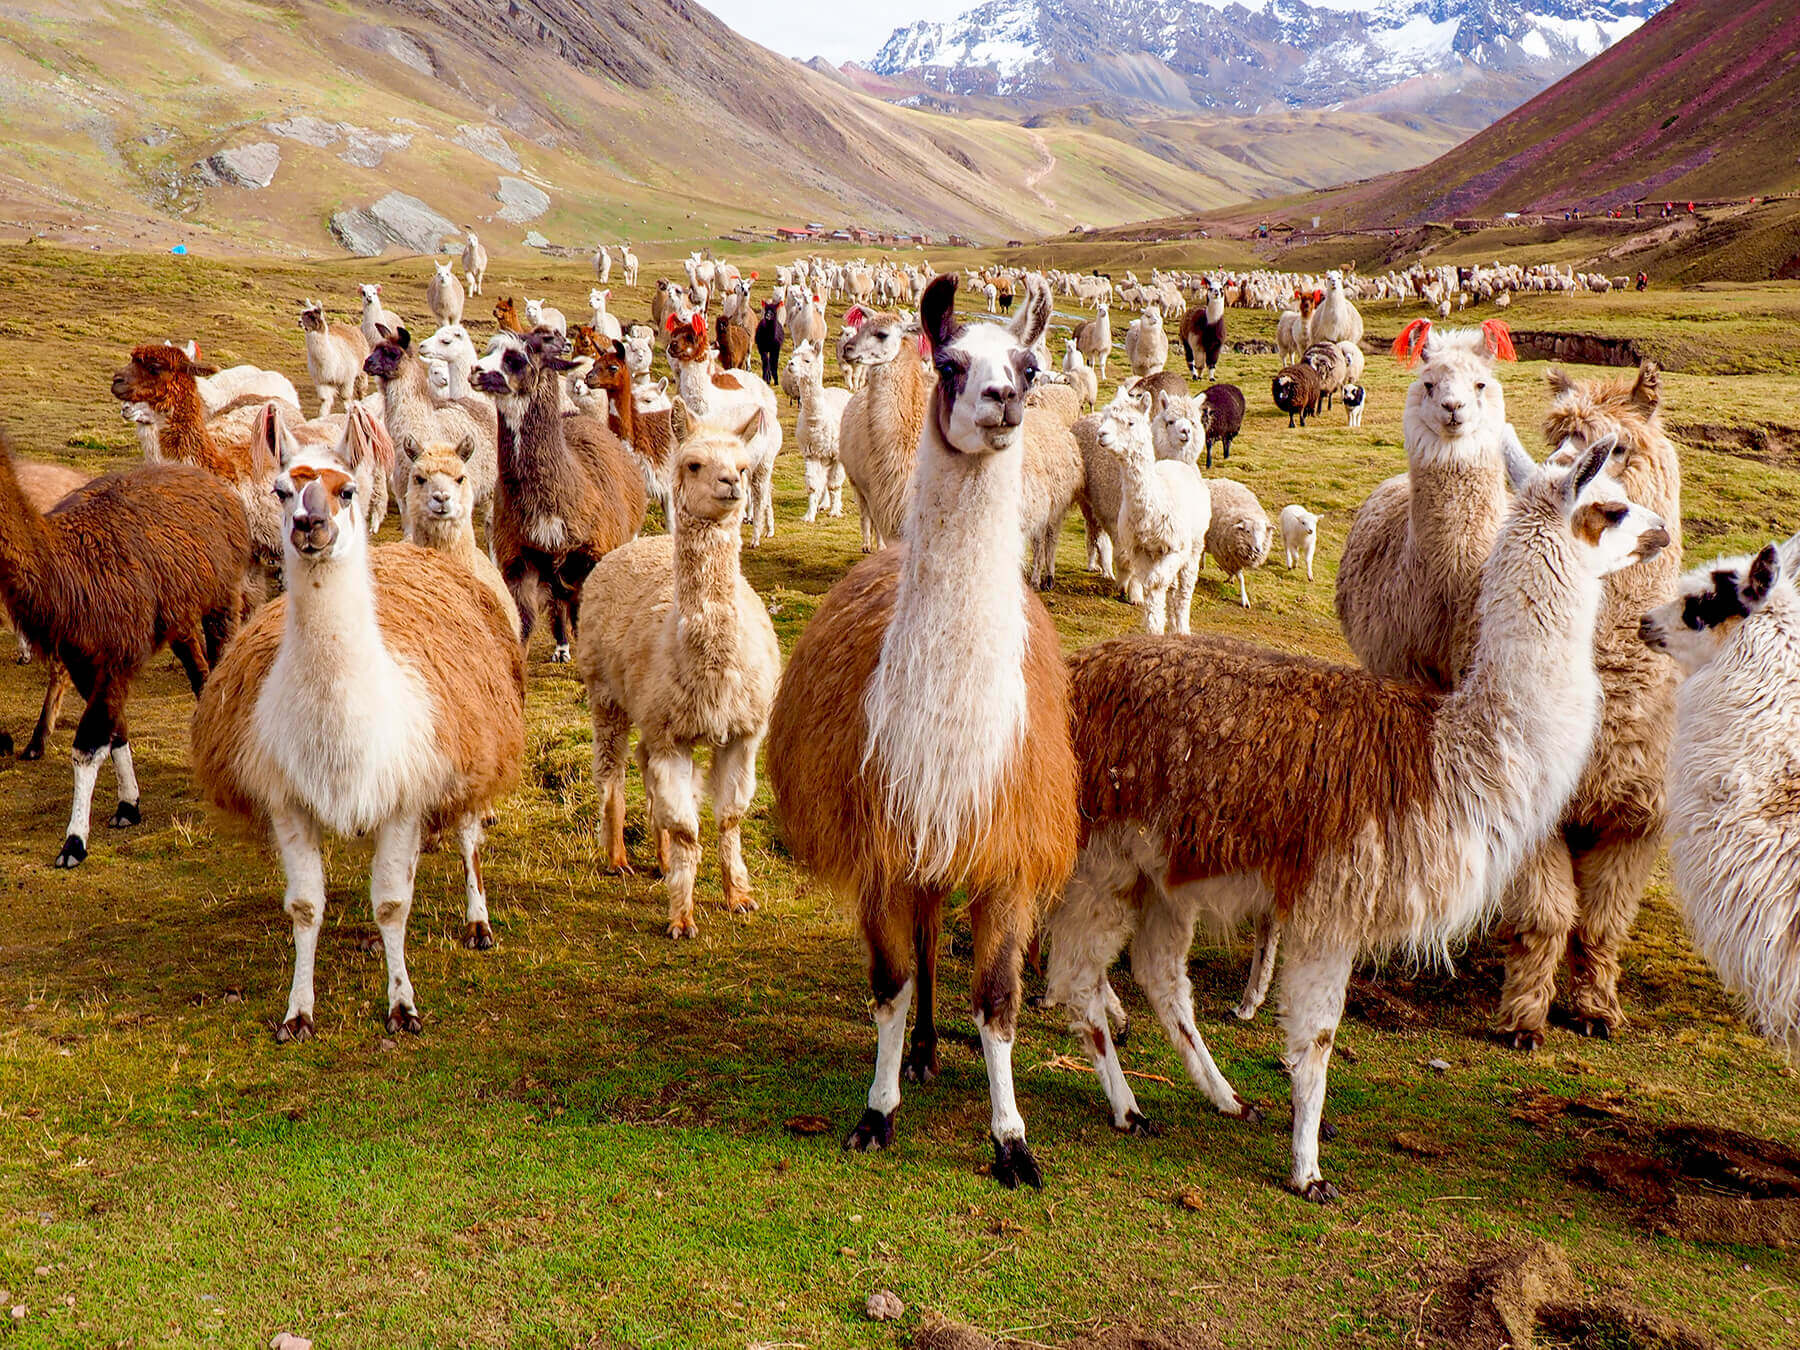 Lamas and alpacas are found everywhere in Peru